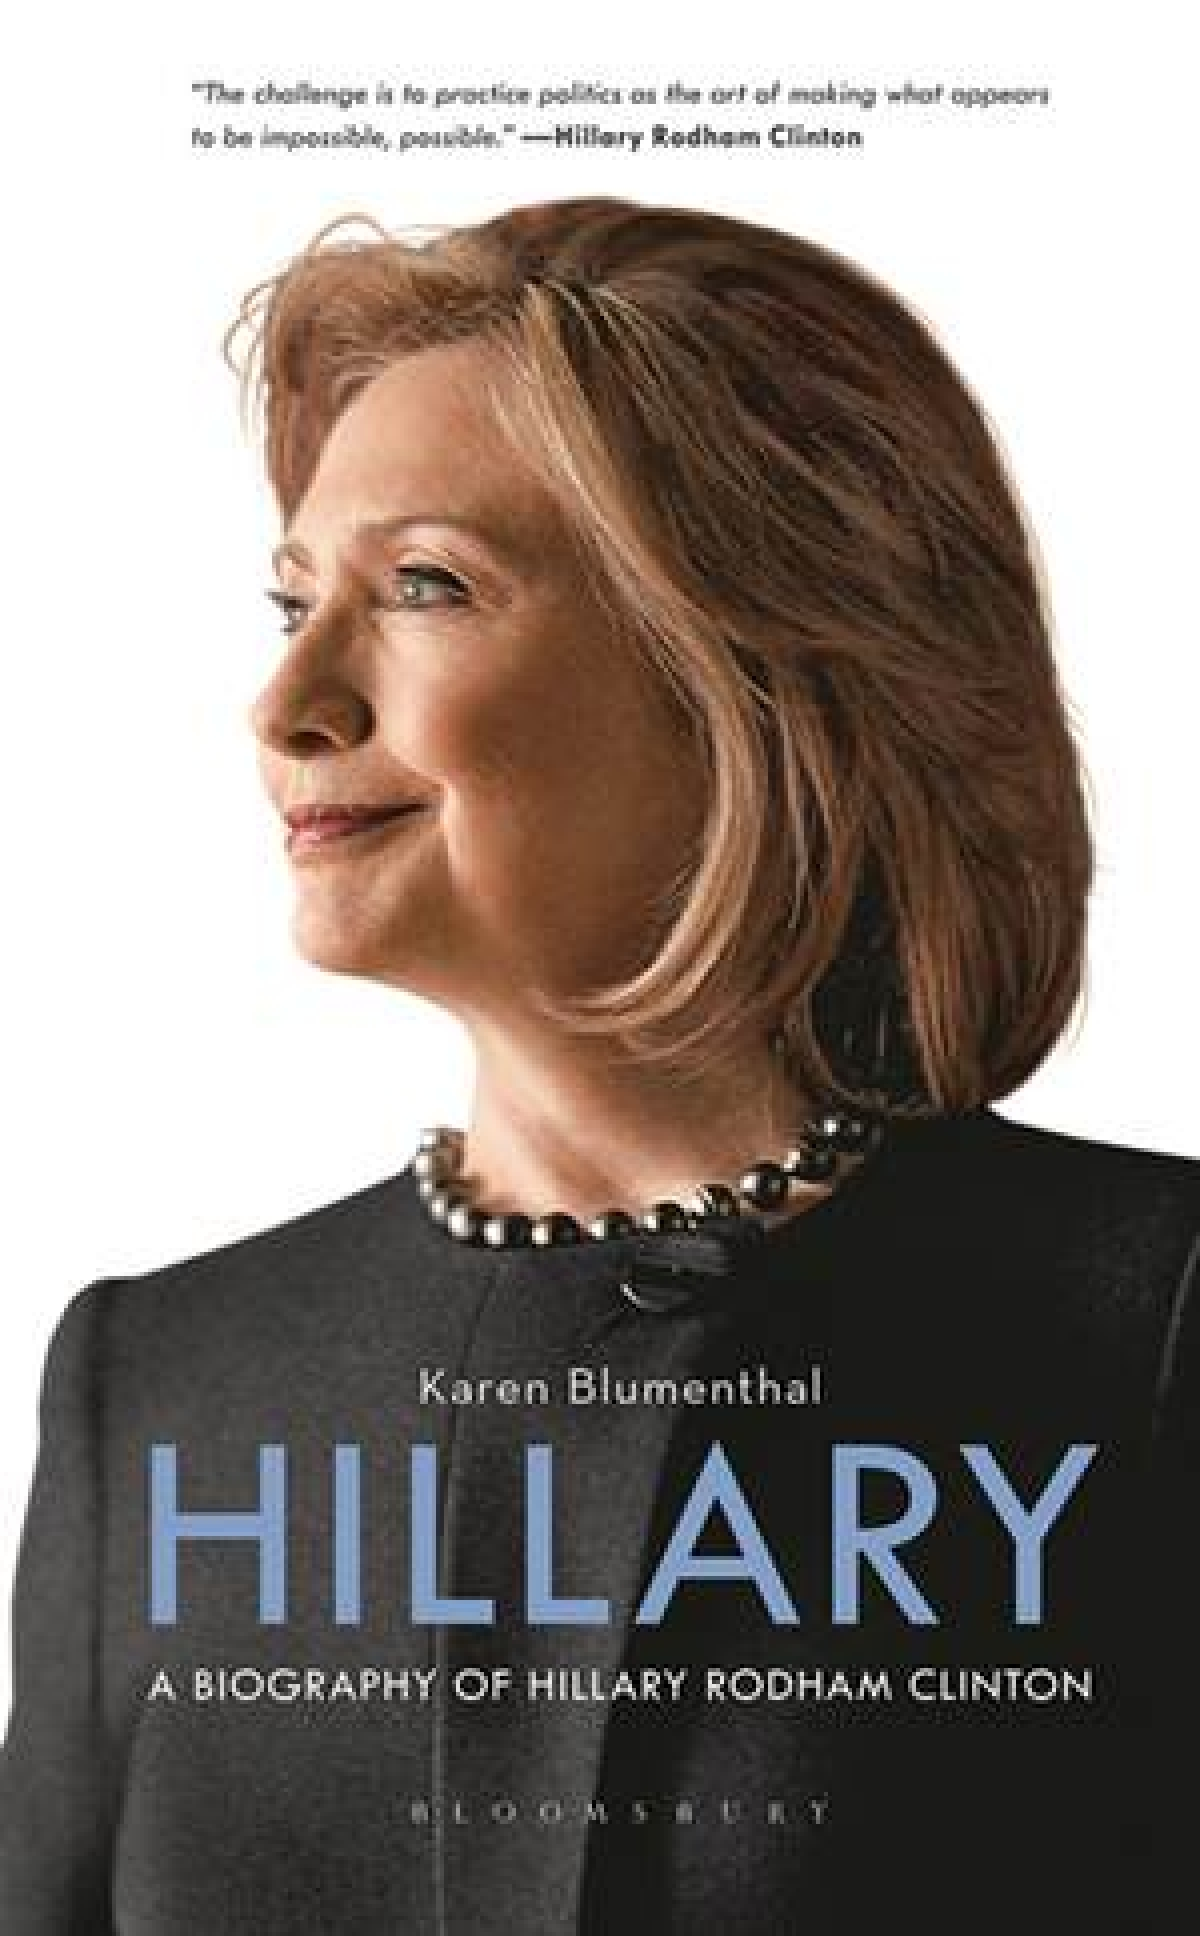 The eventful journey of Hillary Clinton